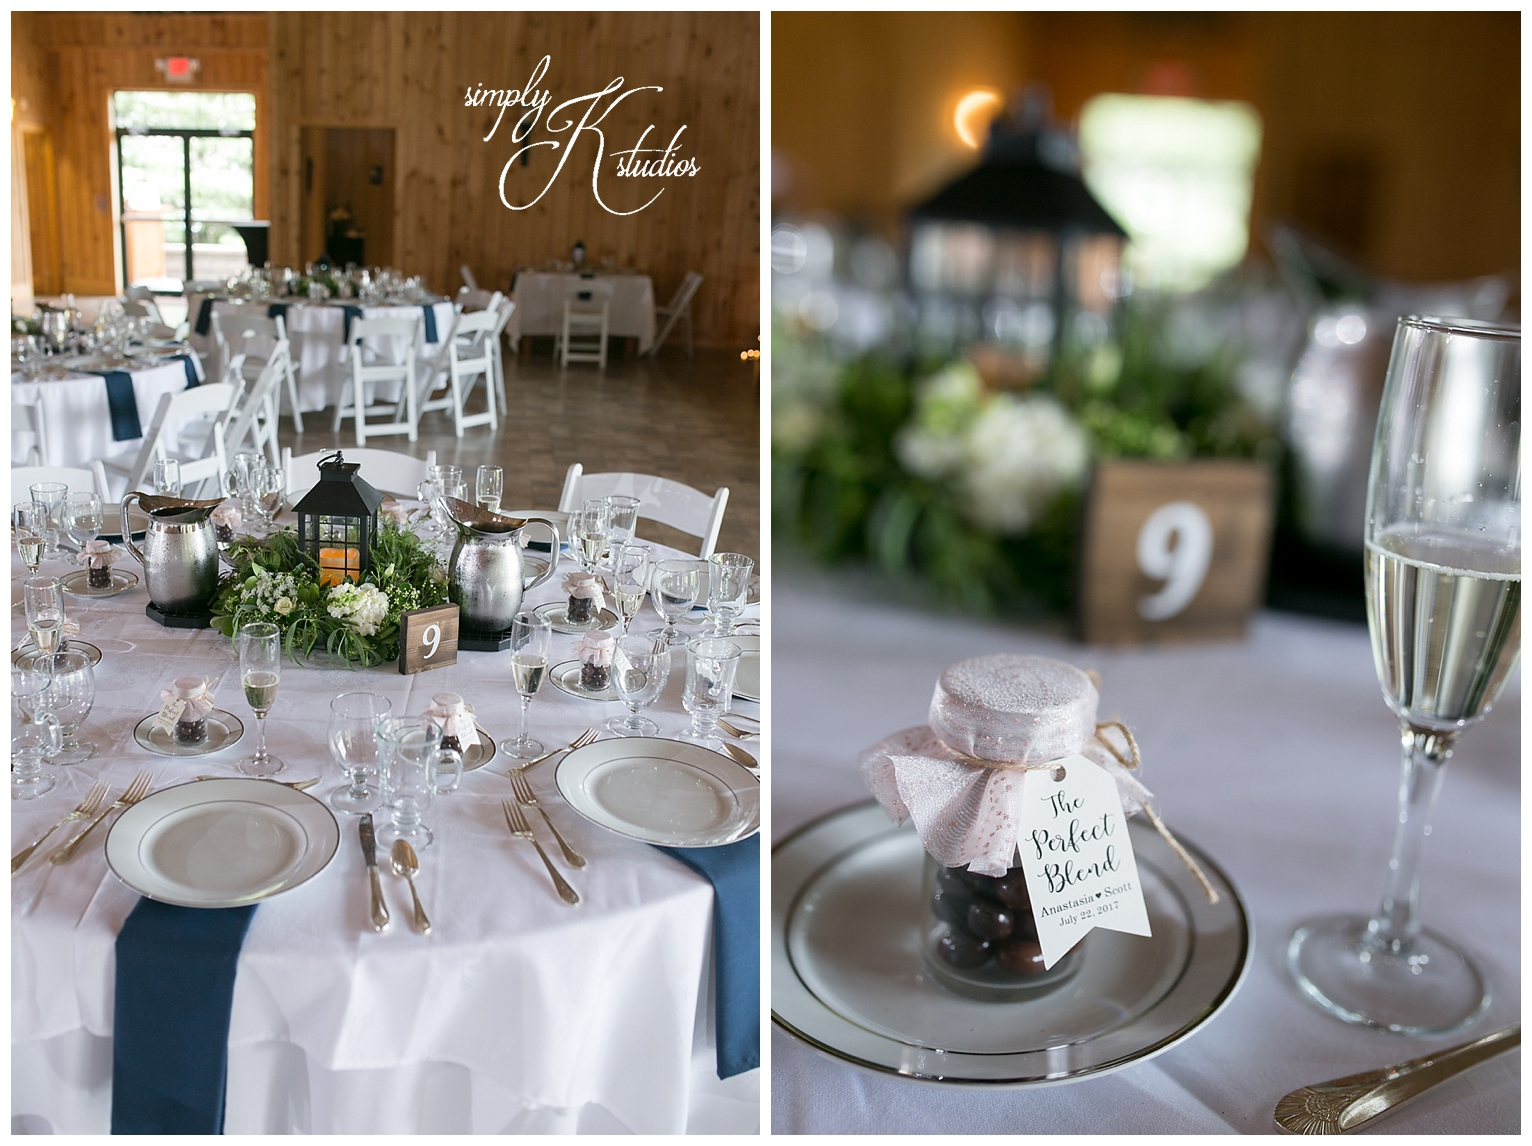 Wedding Venues for a Rustic Wedding in CT.jpg